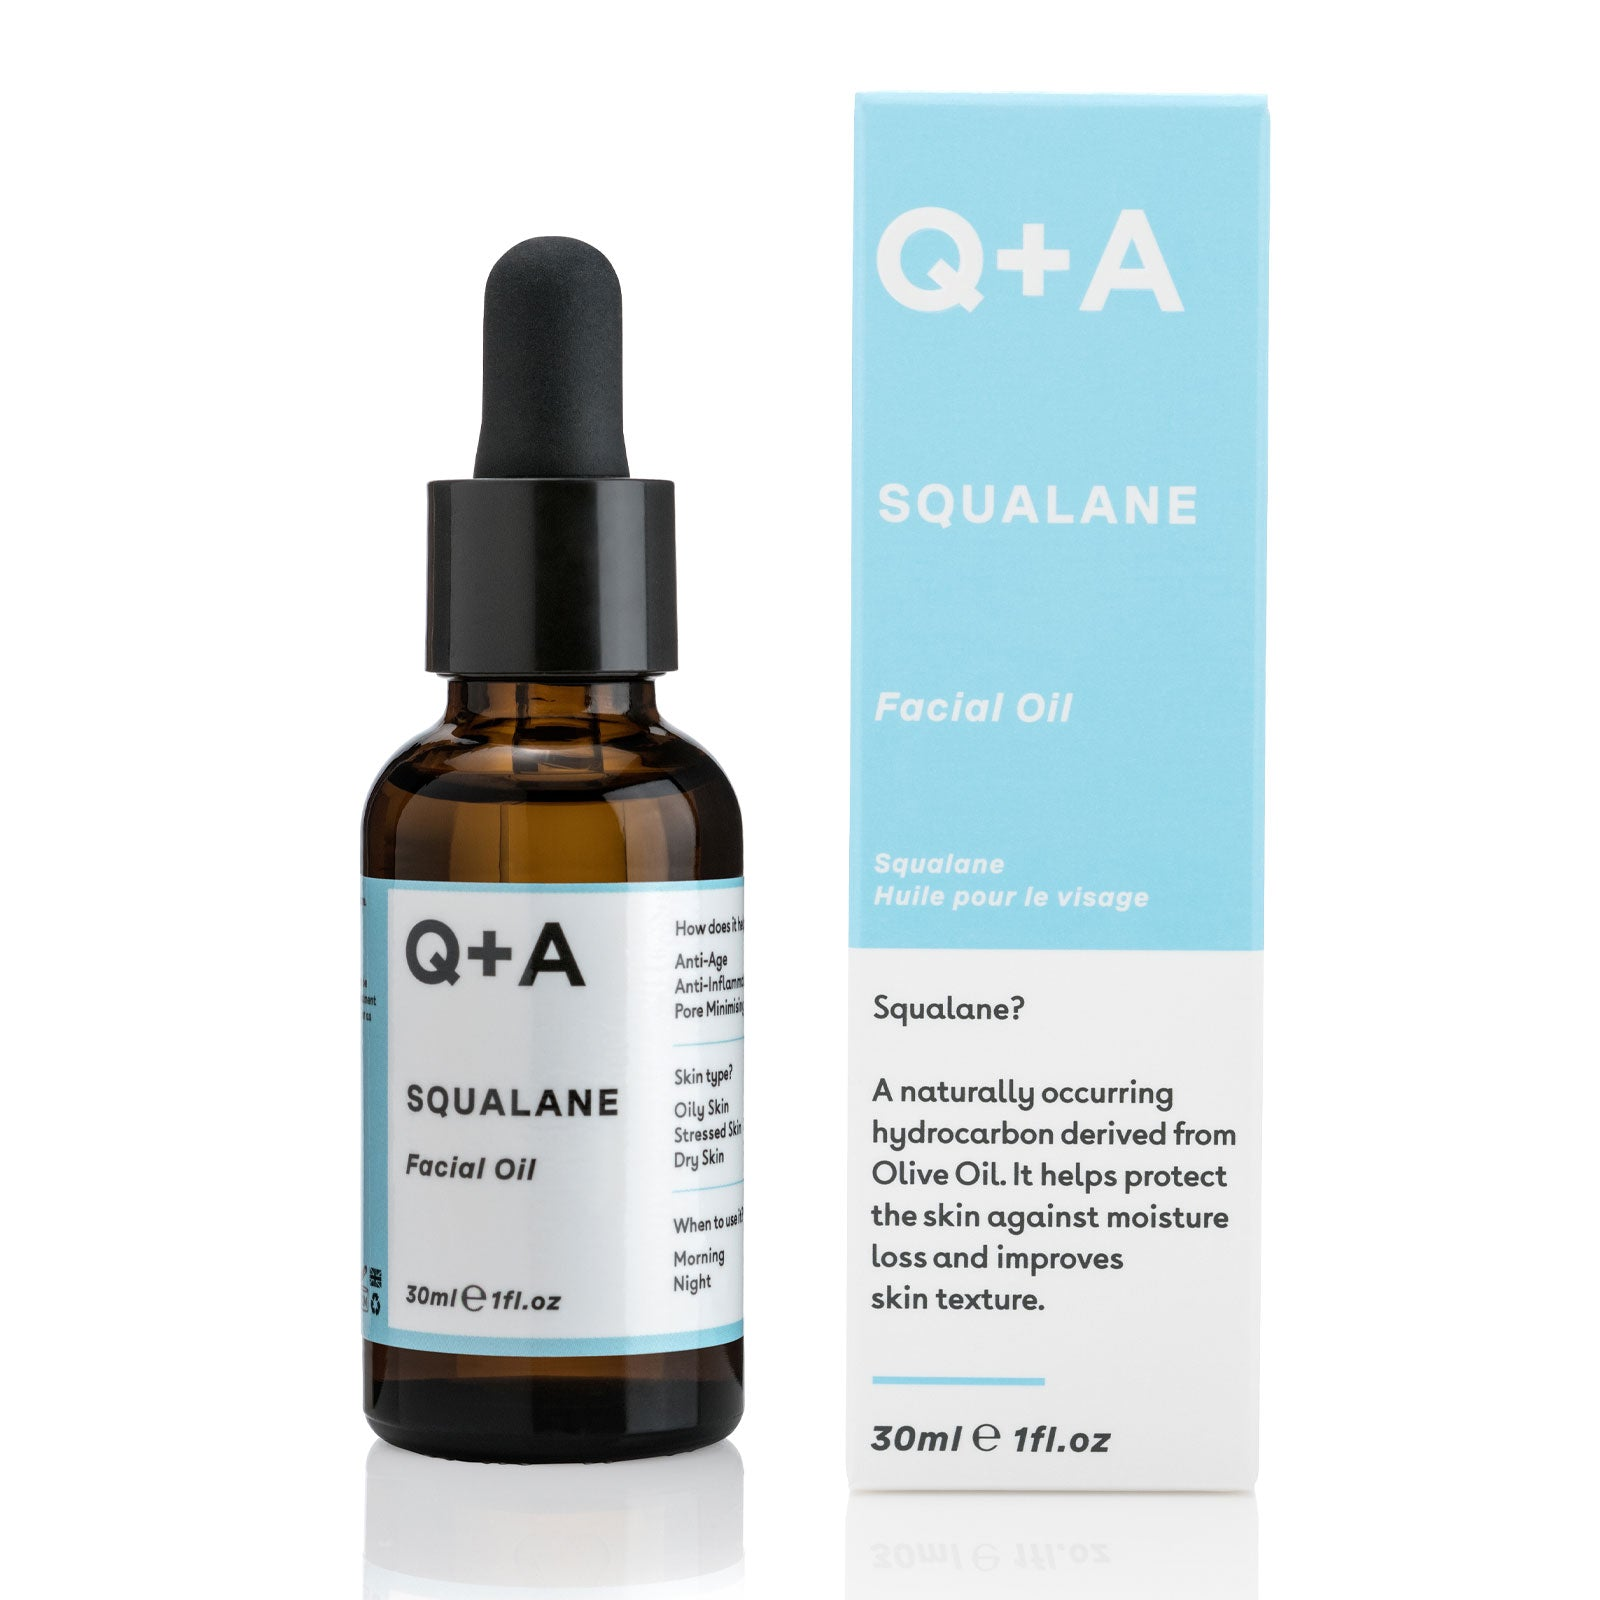 Q+A Squalane Facial Oil 30ml